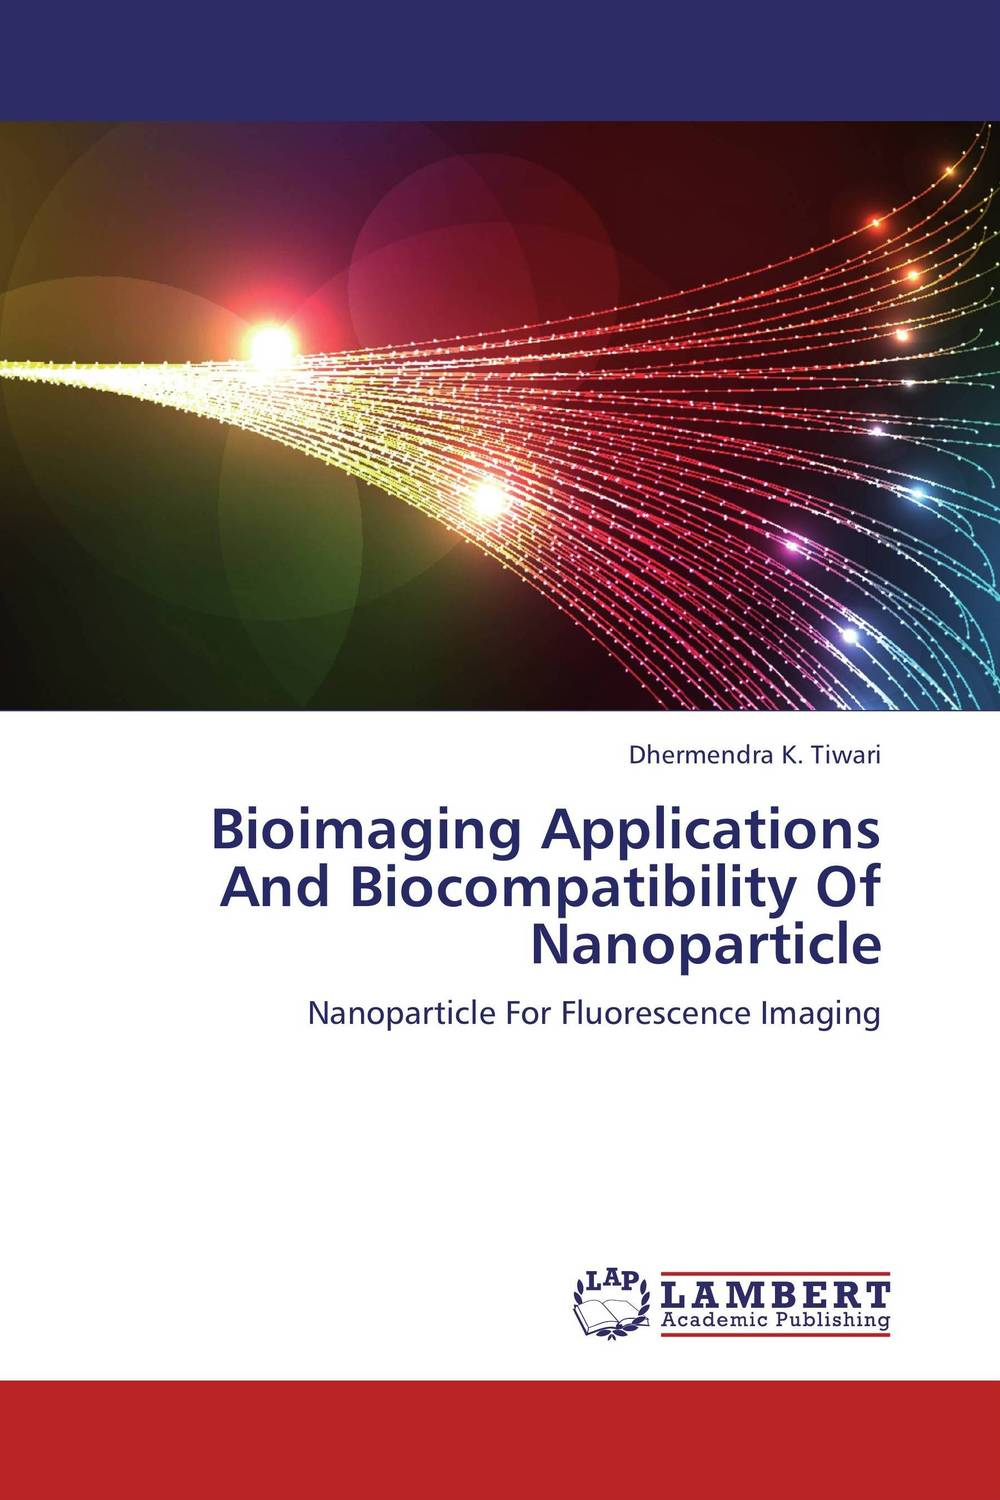 Bioimaging Applications And Biocompatibility Of Nanoparticle